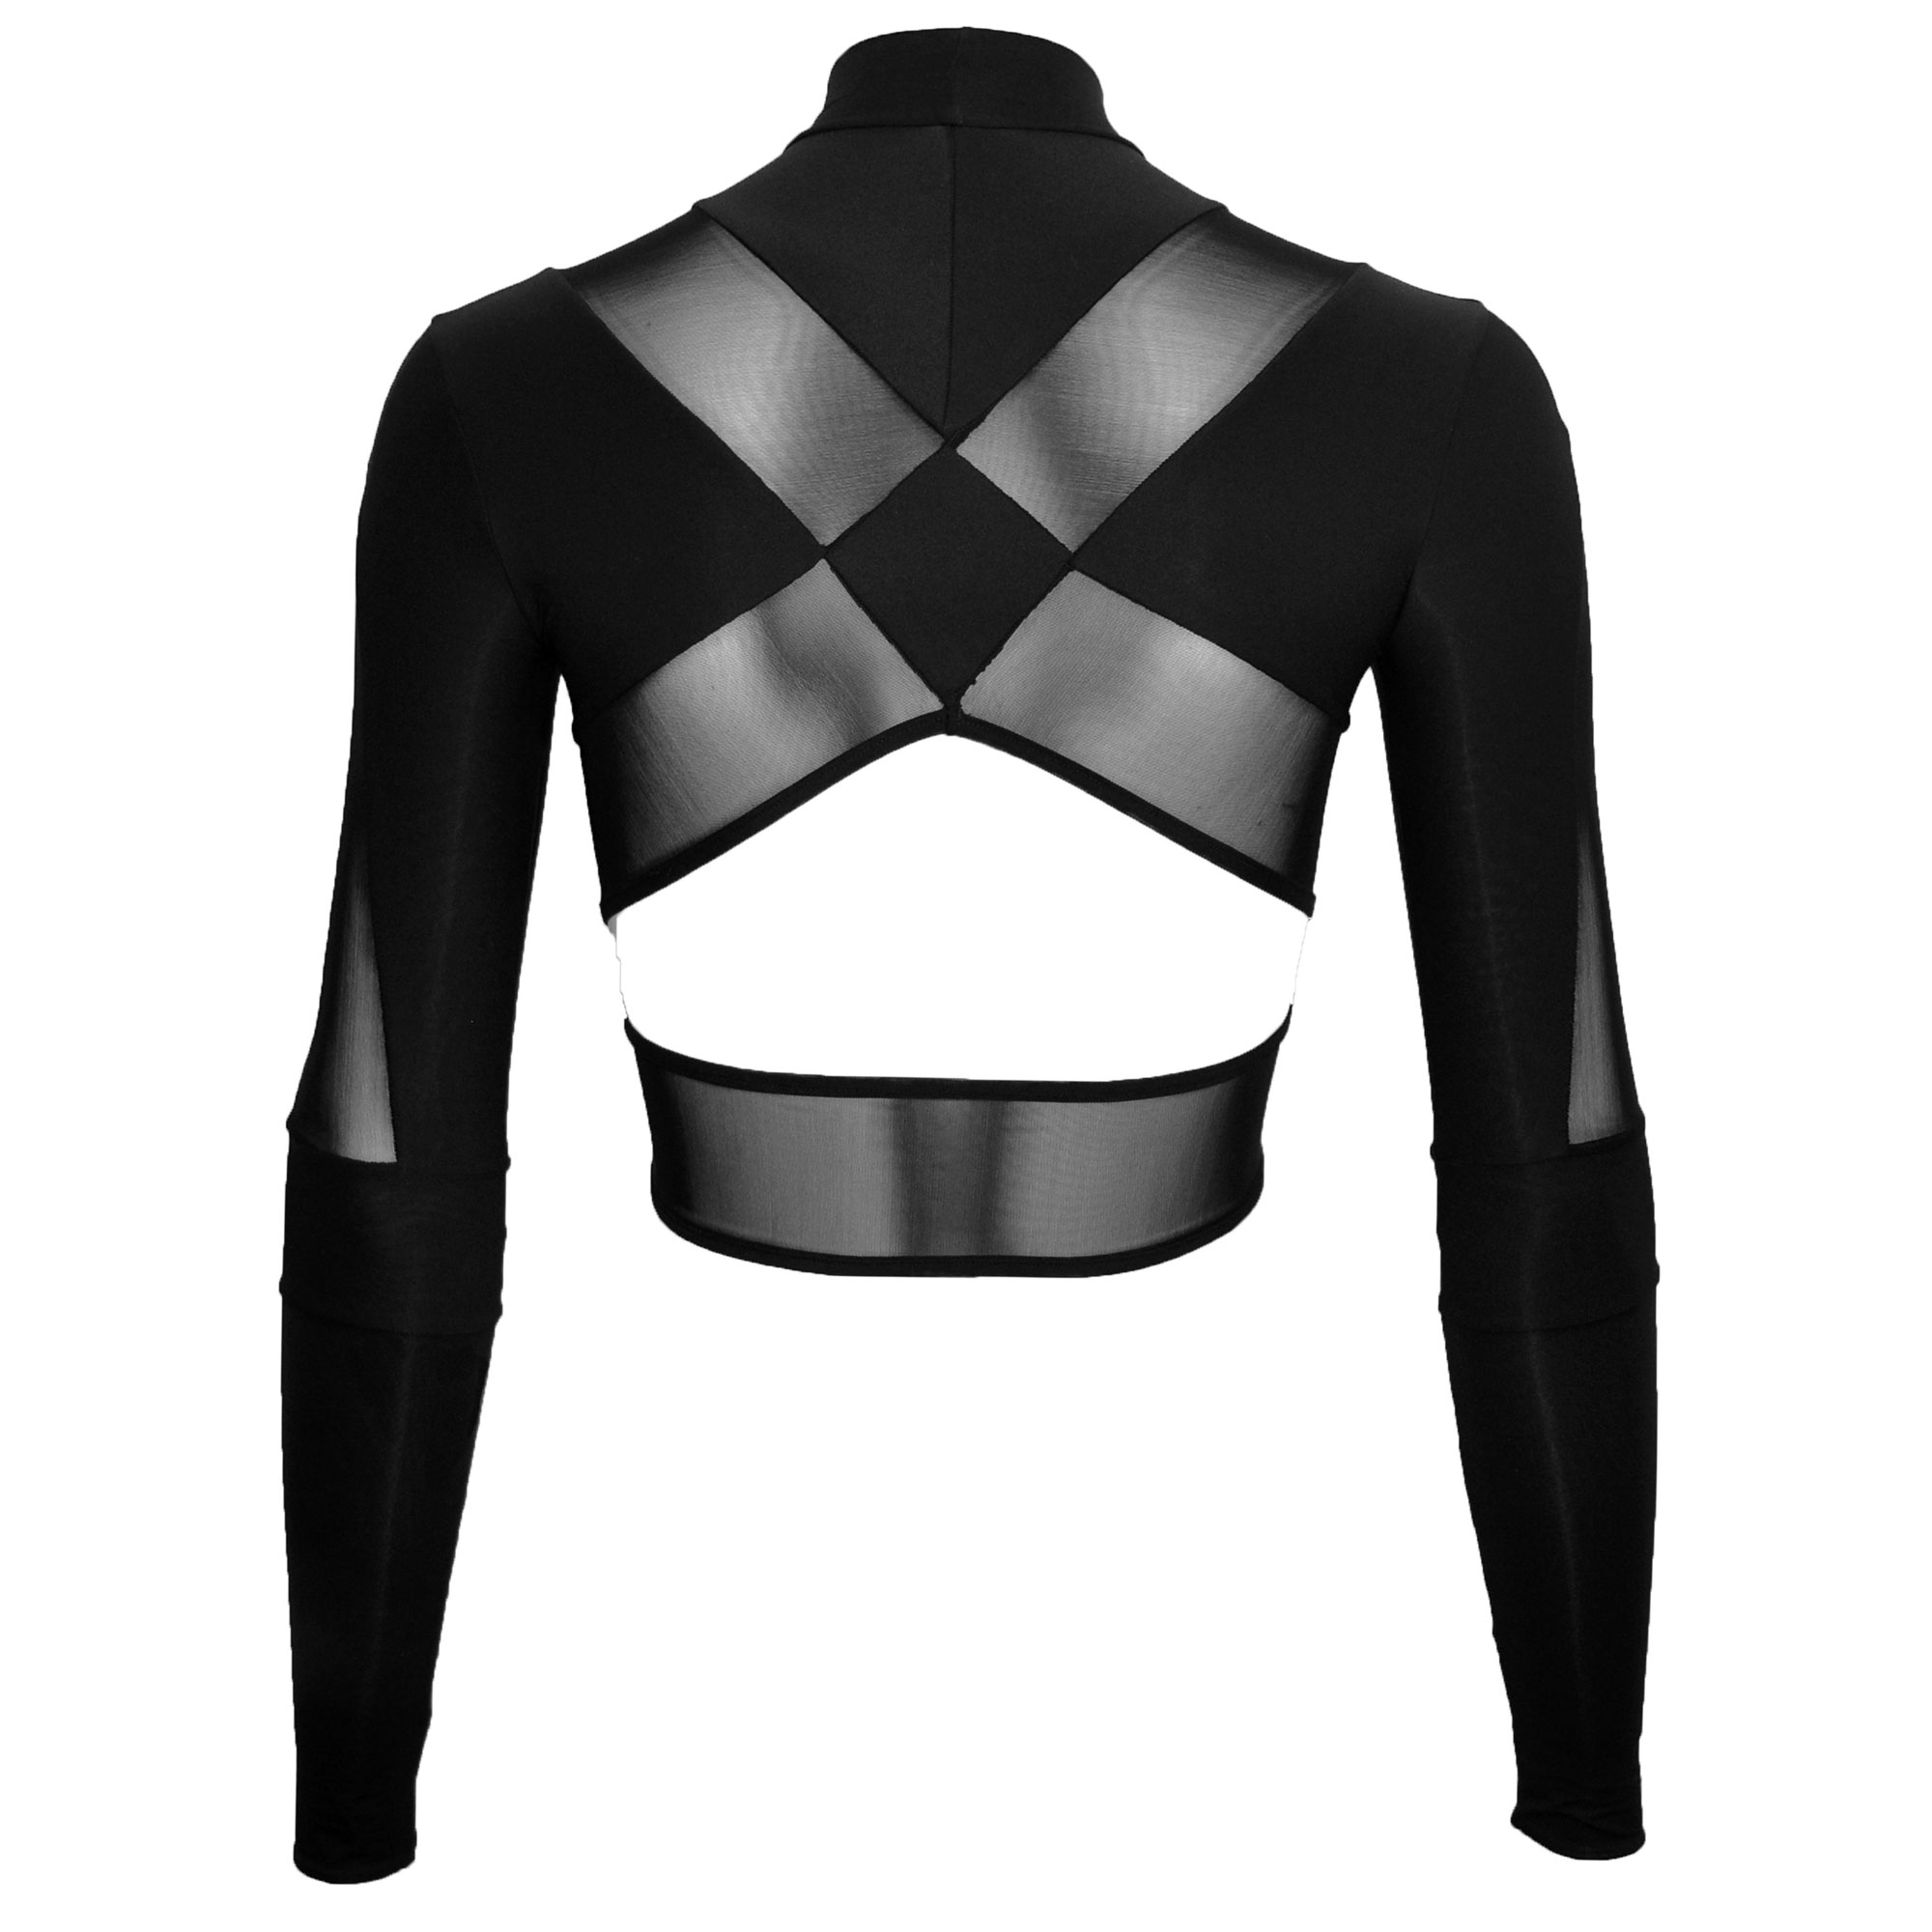 DSTM Jung long sleeve crop top